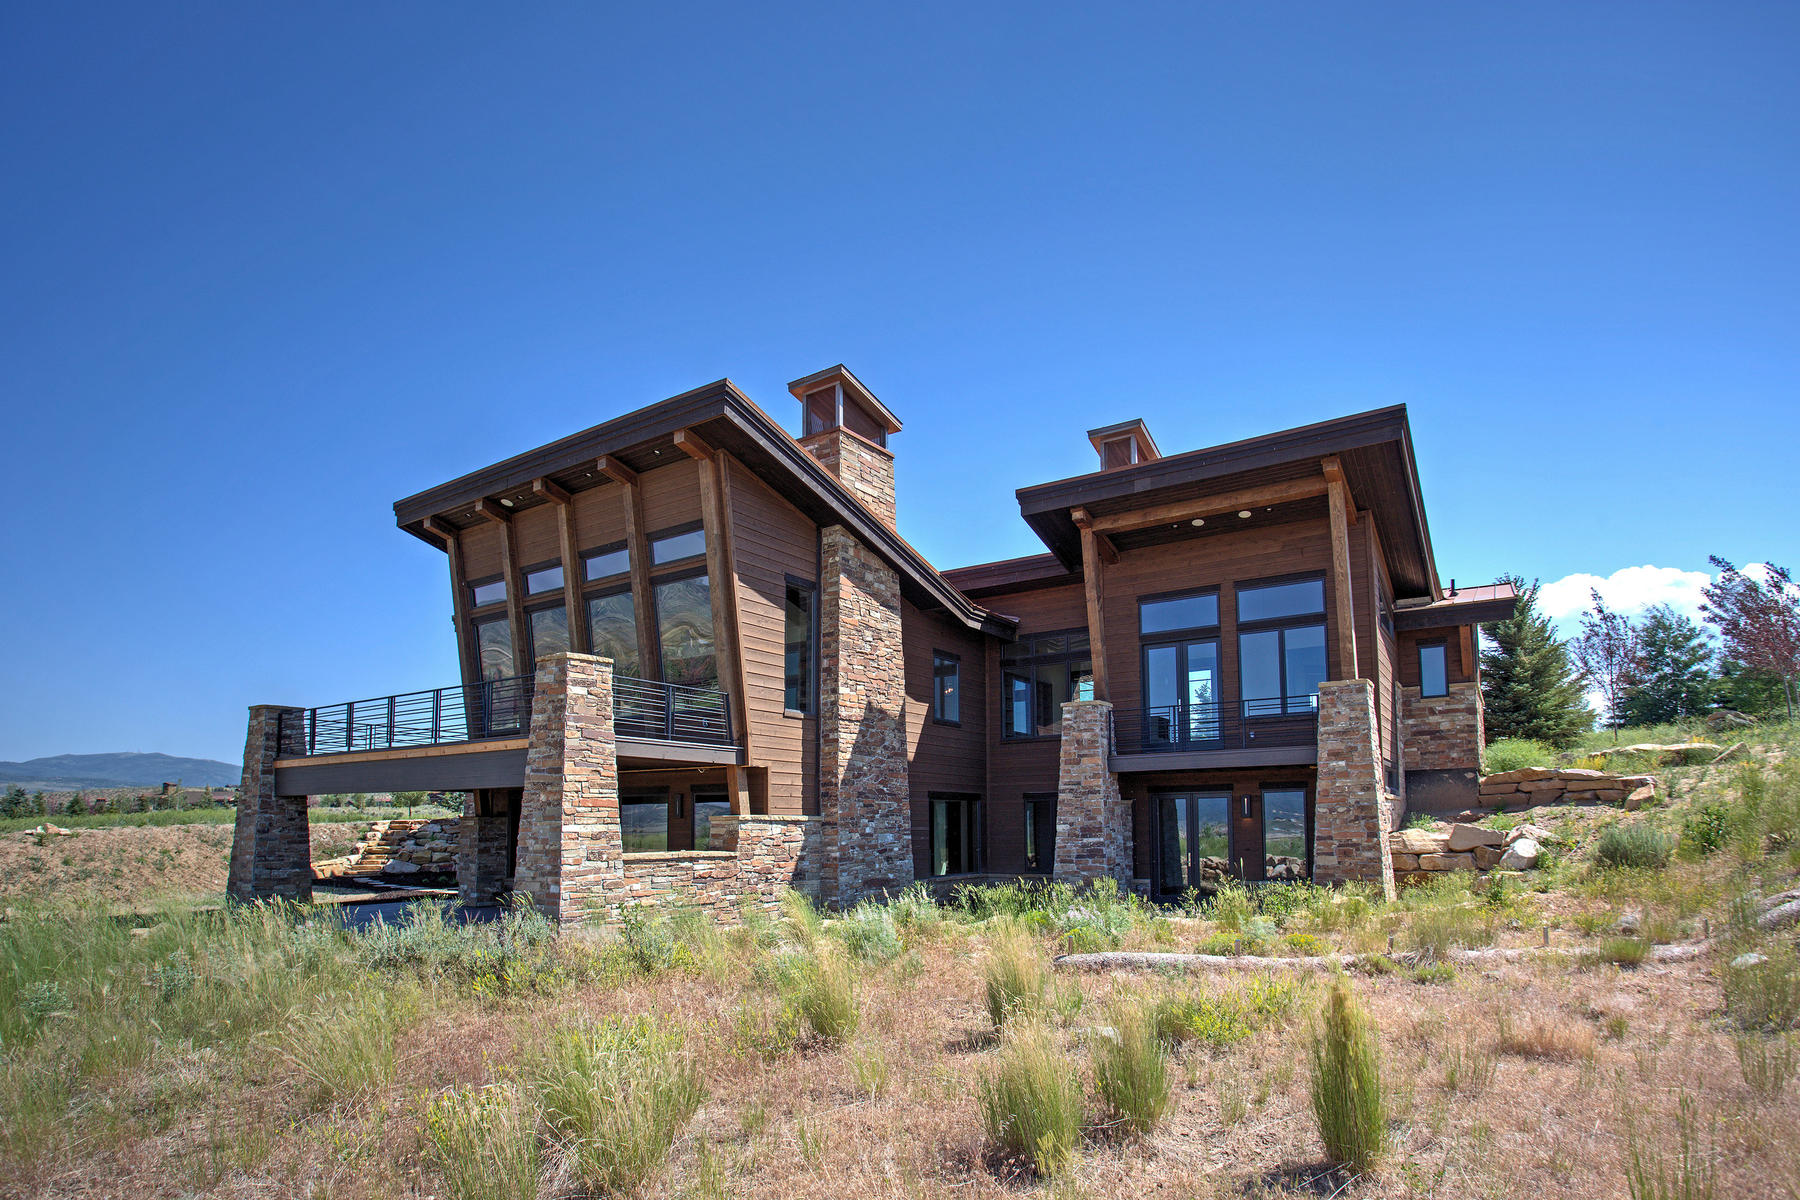 独户住宅 为 销售 在 New Construction in Promontory with Panoramic Views of Park City's Three Ski Res 6803 Cody Trail 帕克城, 犹他州, 84098 美国